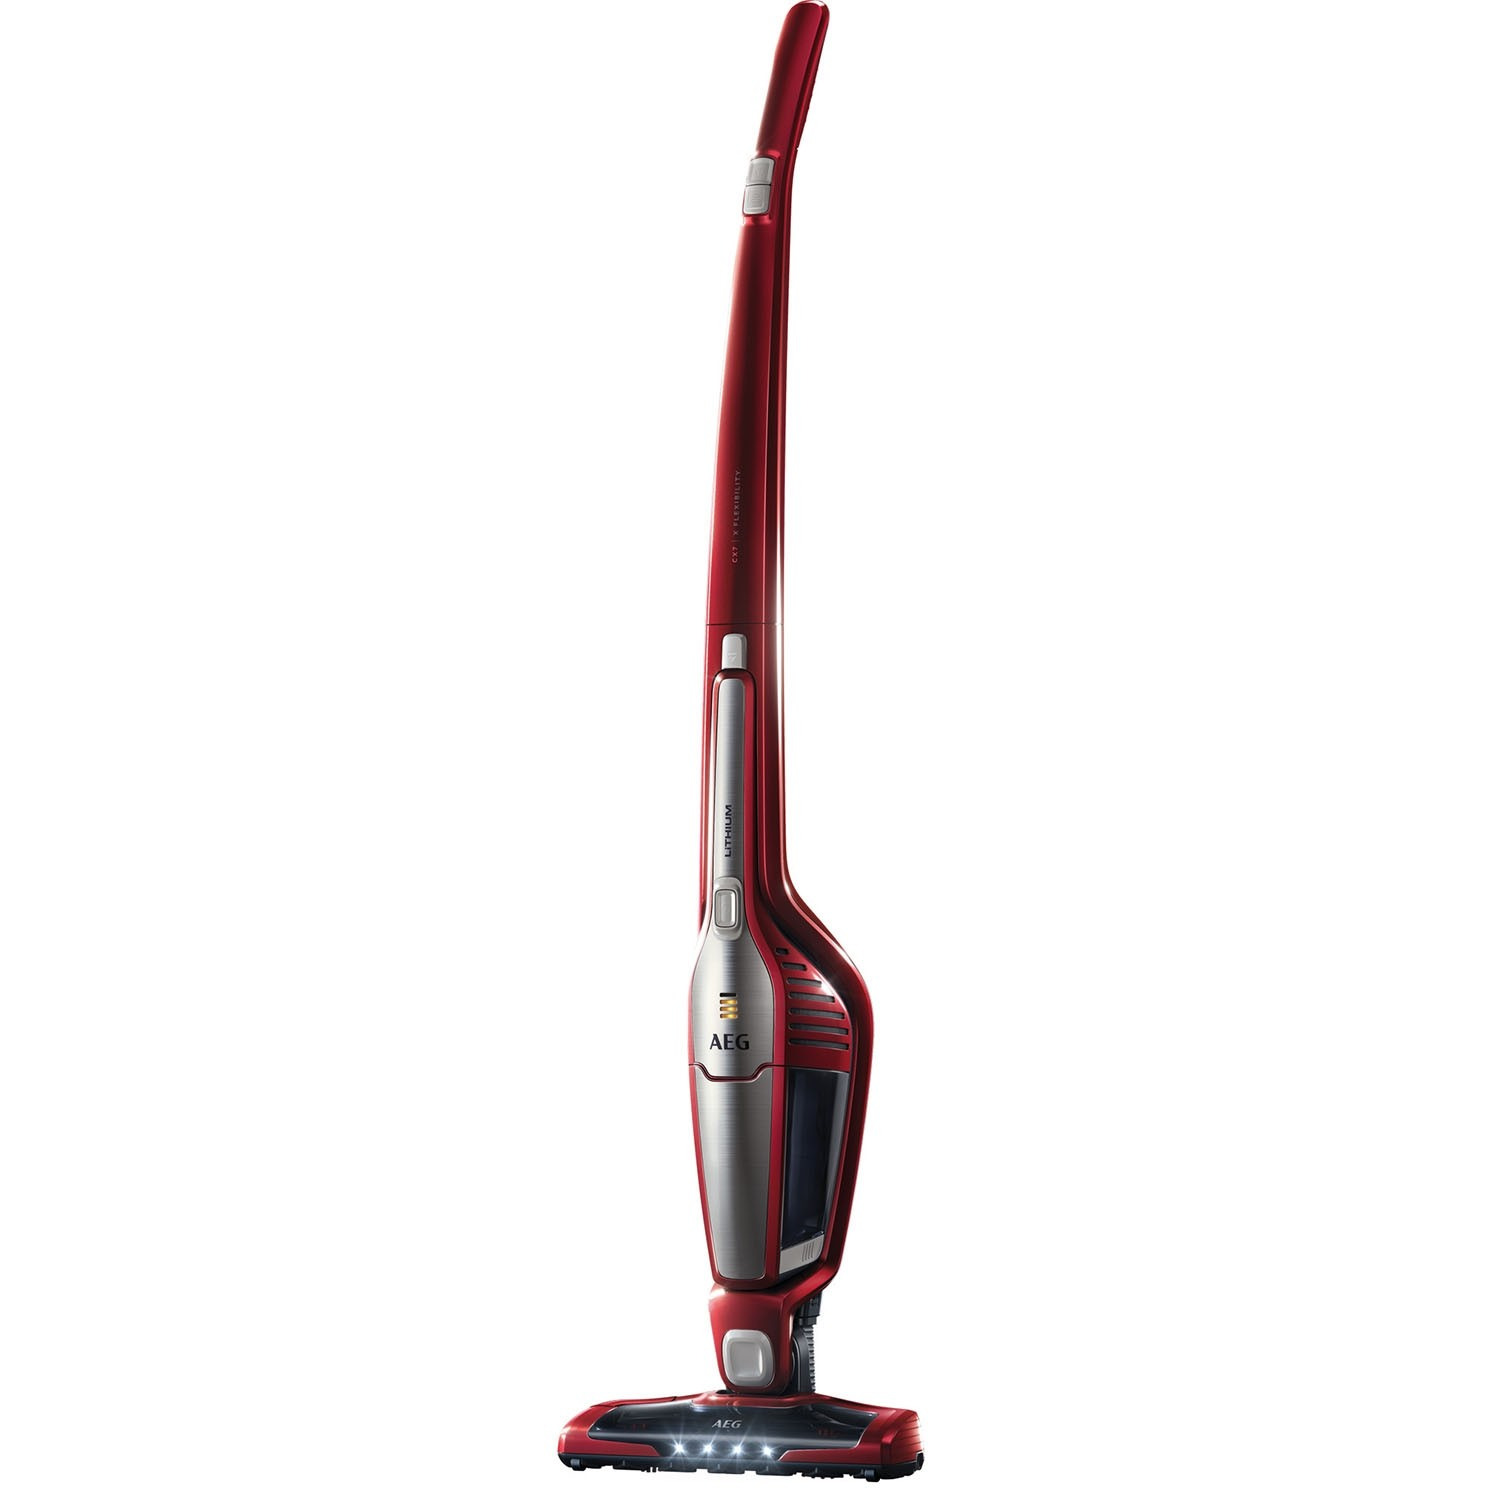 AEG CX7-2-35WR Cordless Vacuum Cleaner in Watermelon Red